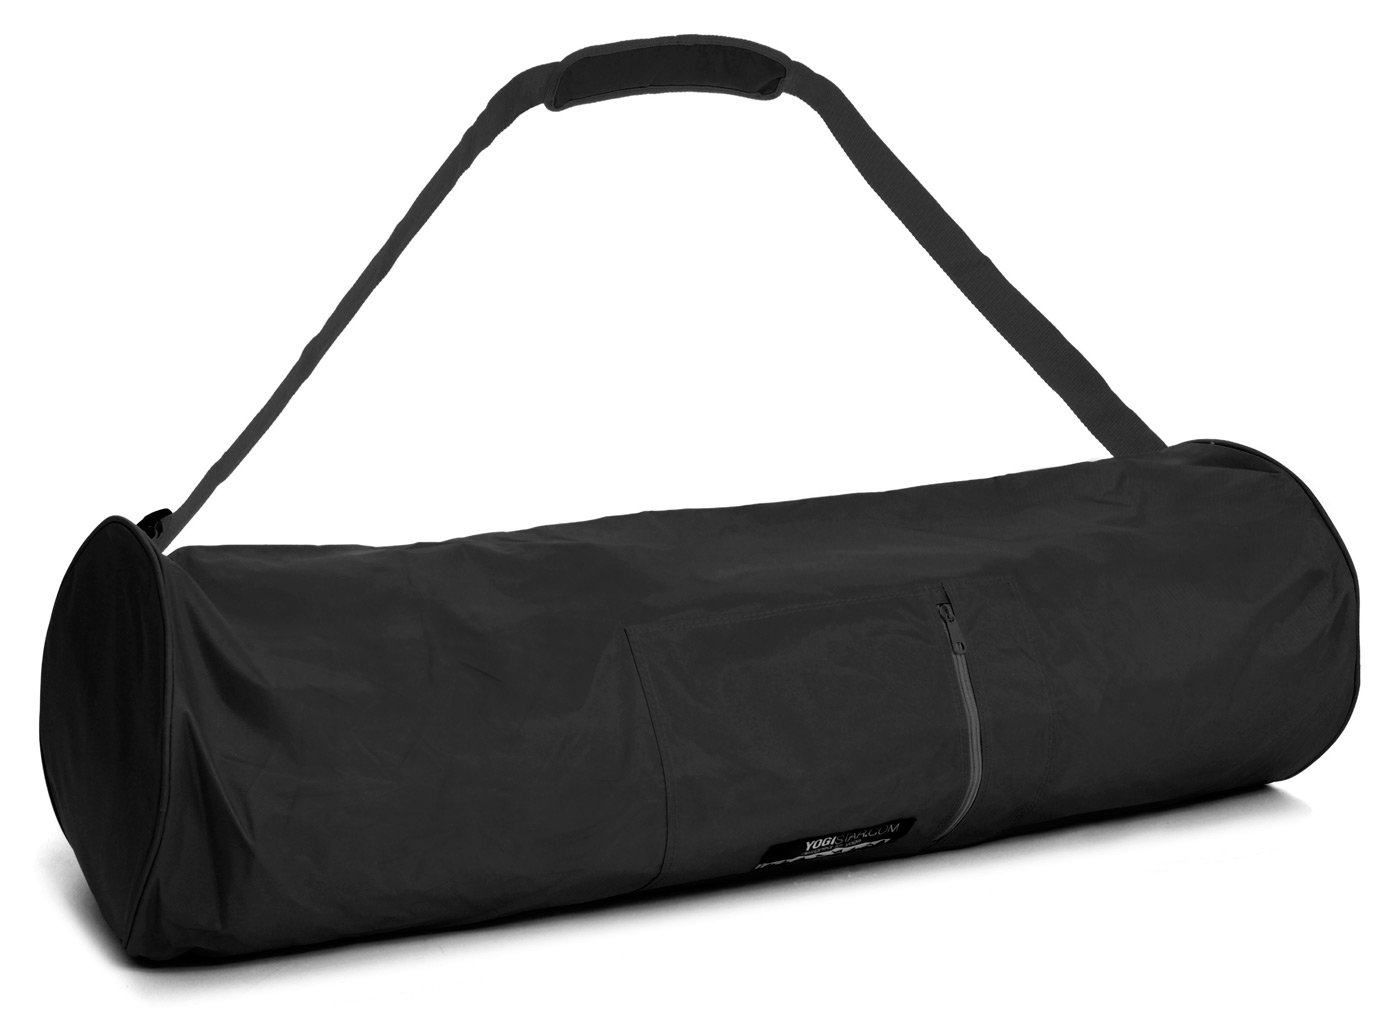 Amazon.com : Yogistar Sac pour tapis de yoga Extra Big 75 cm ...